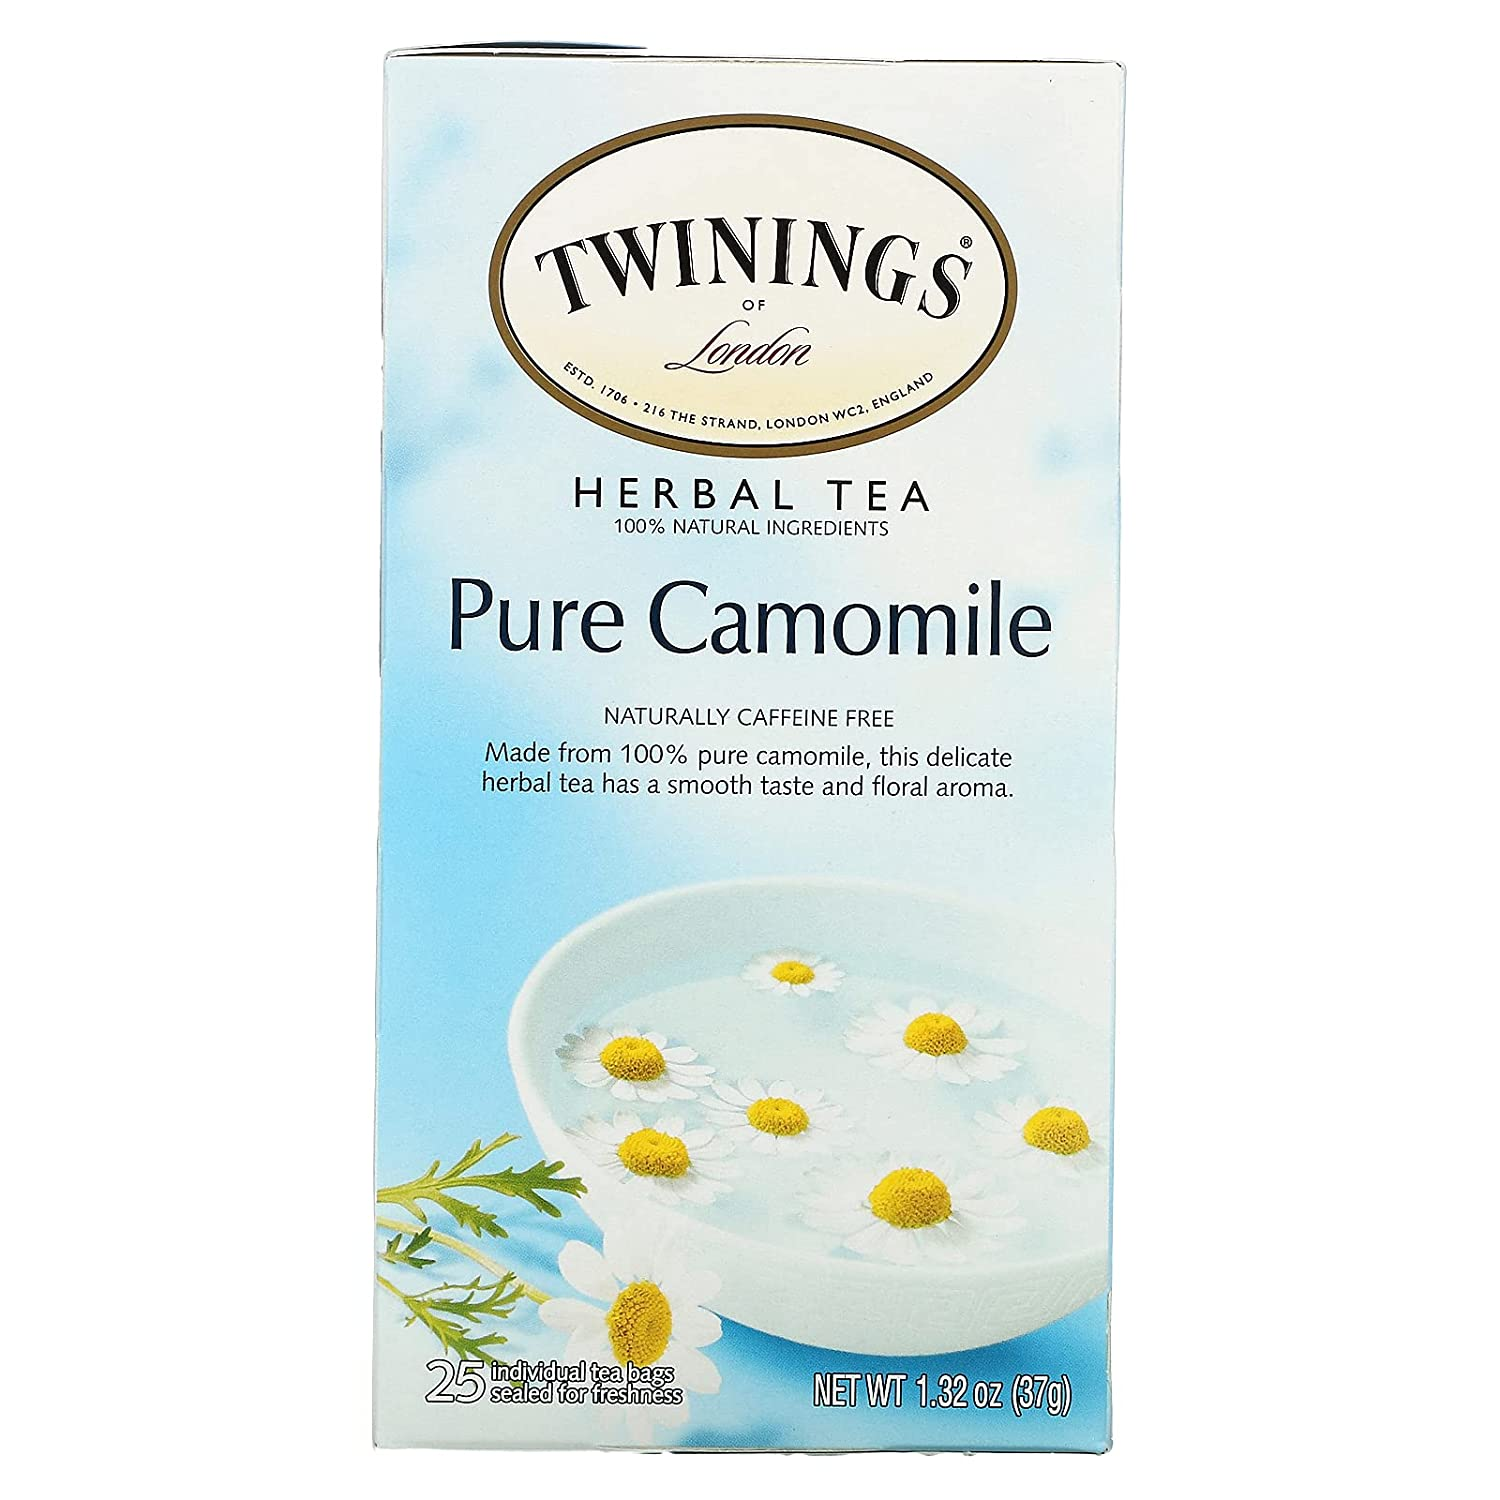 Twinings Max 85% OFF Quantity limited of London Pure Camomile Tea Bags Count 25 Herbal